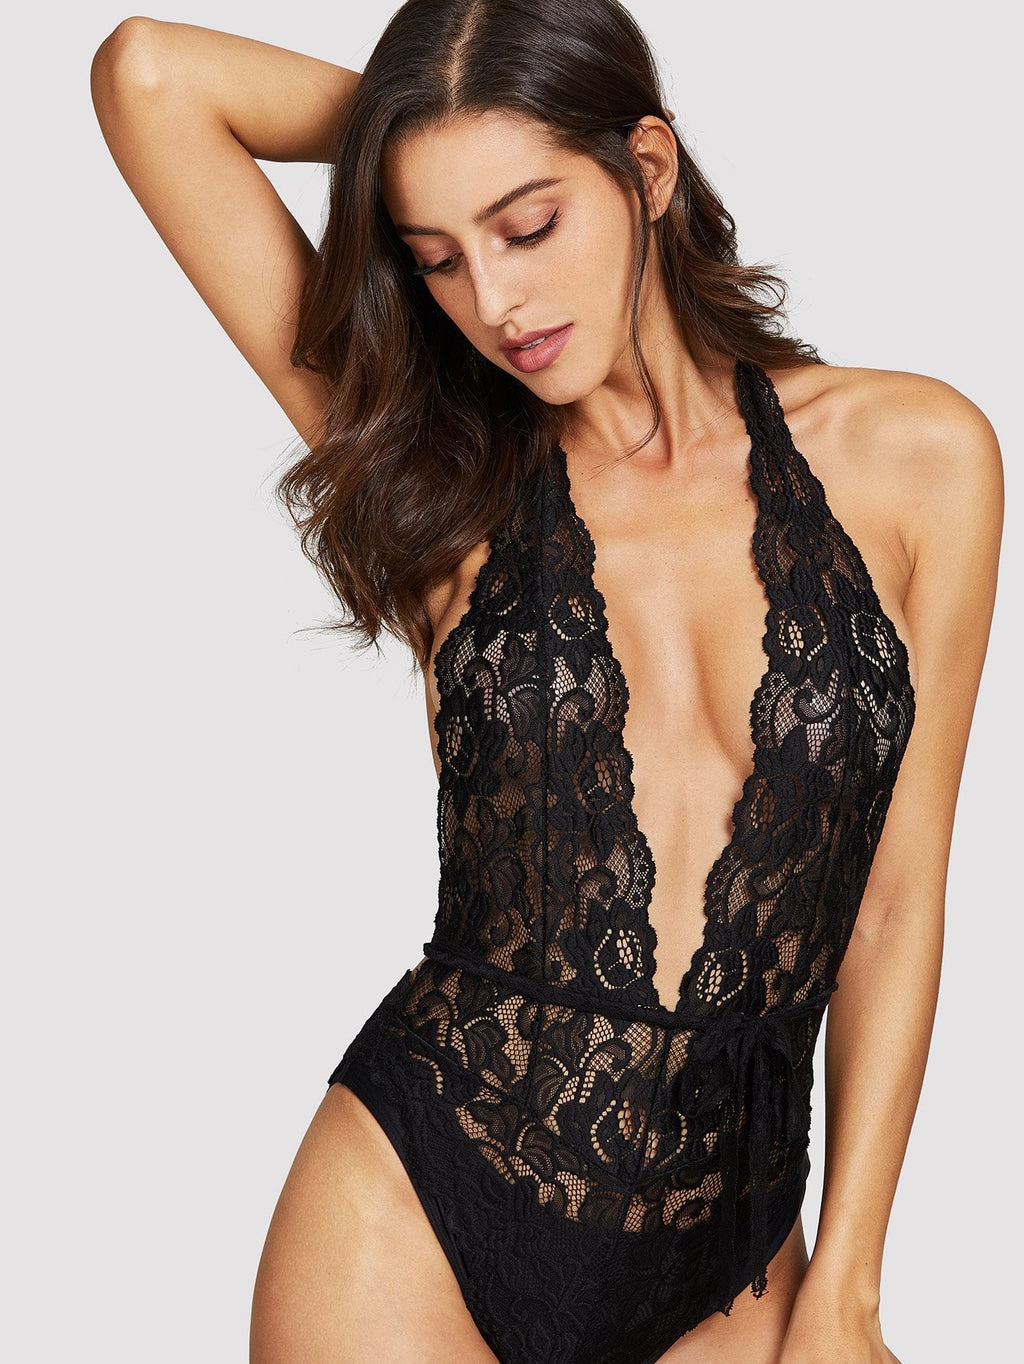 Floral Lace Teddy Bodysuit - Black